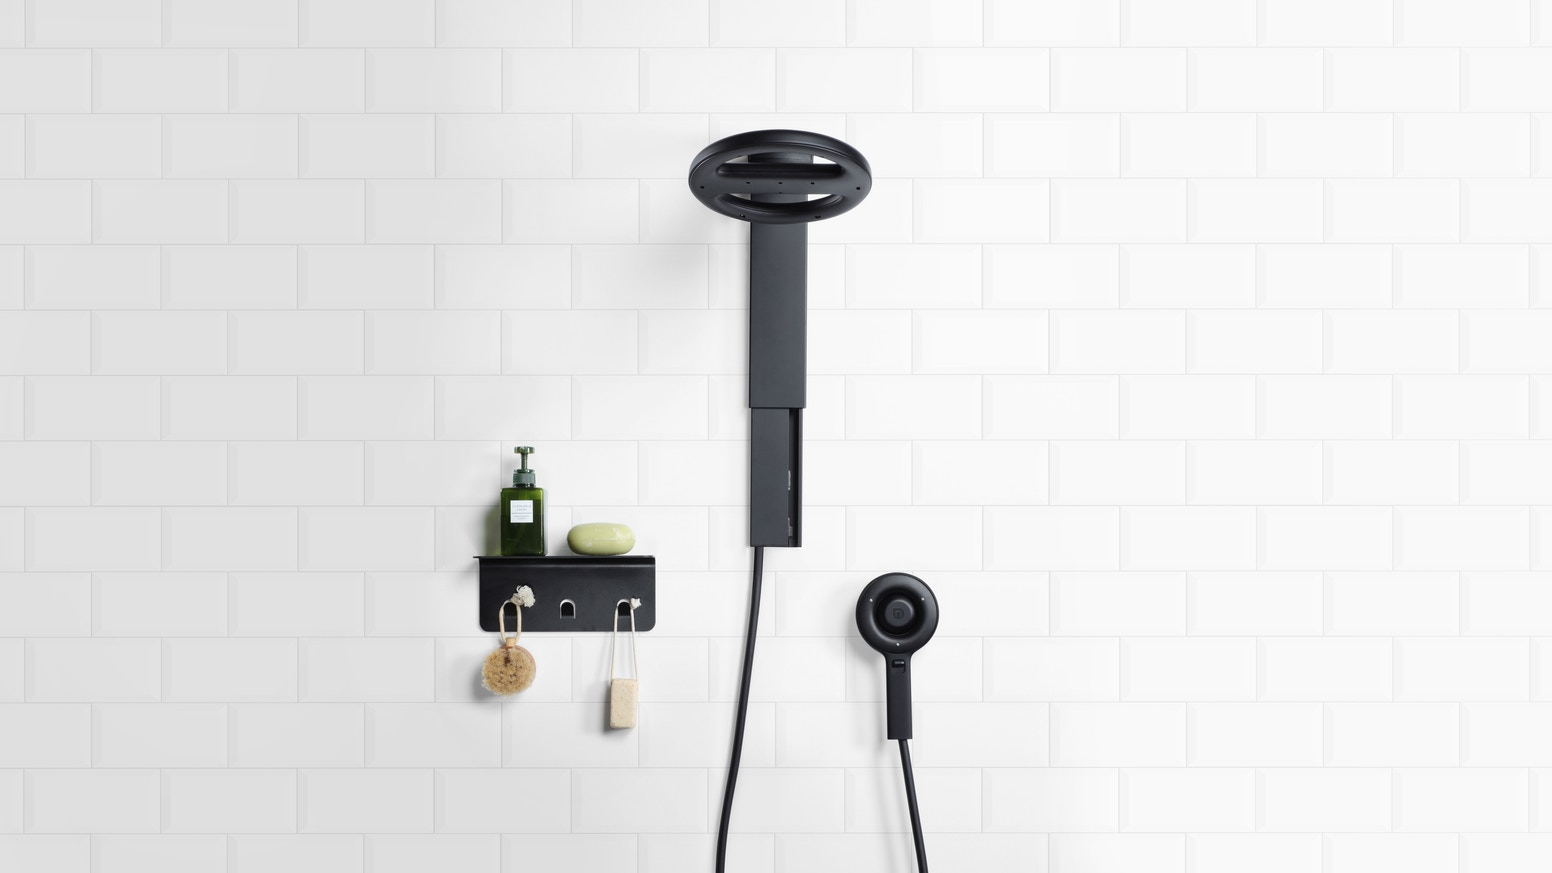 The next evolution in showering: more heat, more power, more coverage; now in matte black. Huge savings.